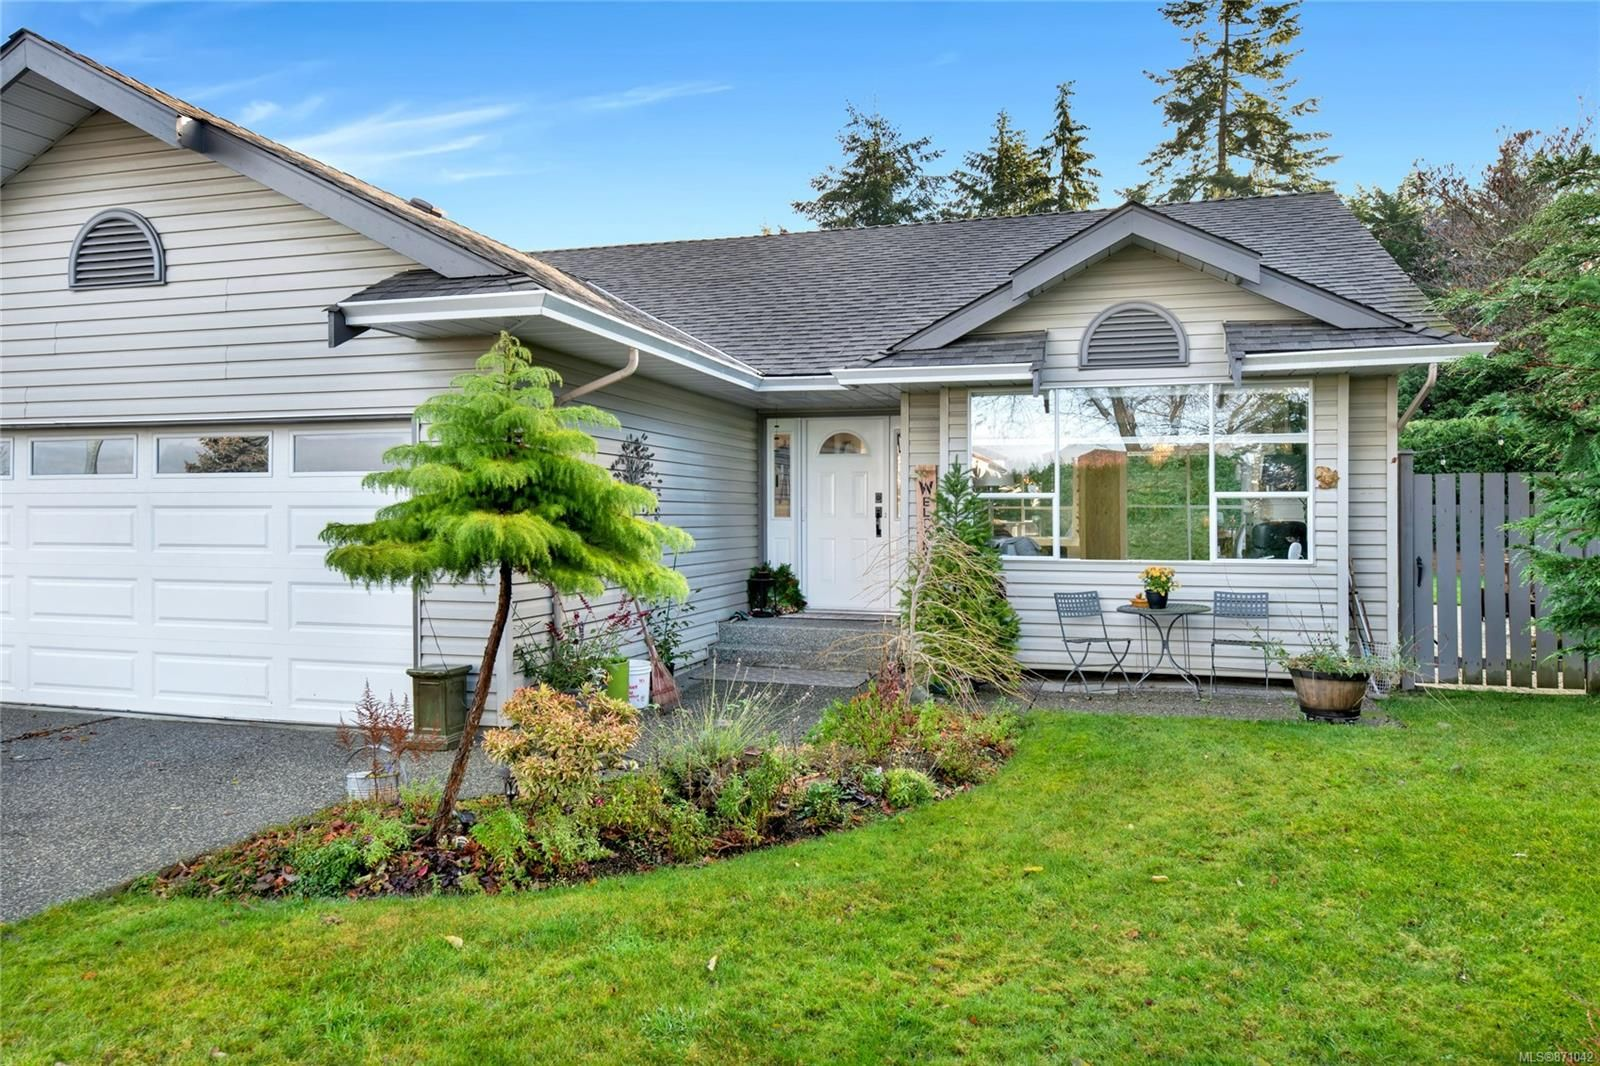 Main Photo: 5844 Cutter Pl in : Na North Nanaimo House for sale (Nanaimo)  : MLS®# 871042